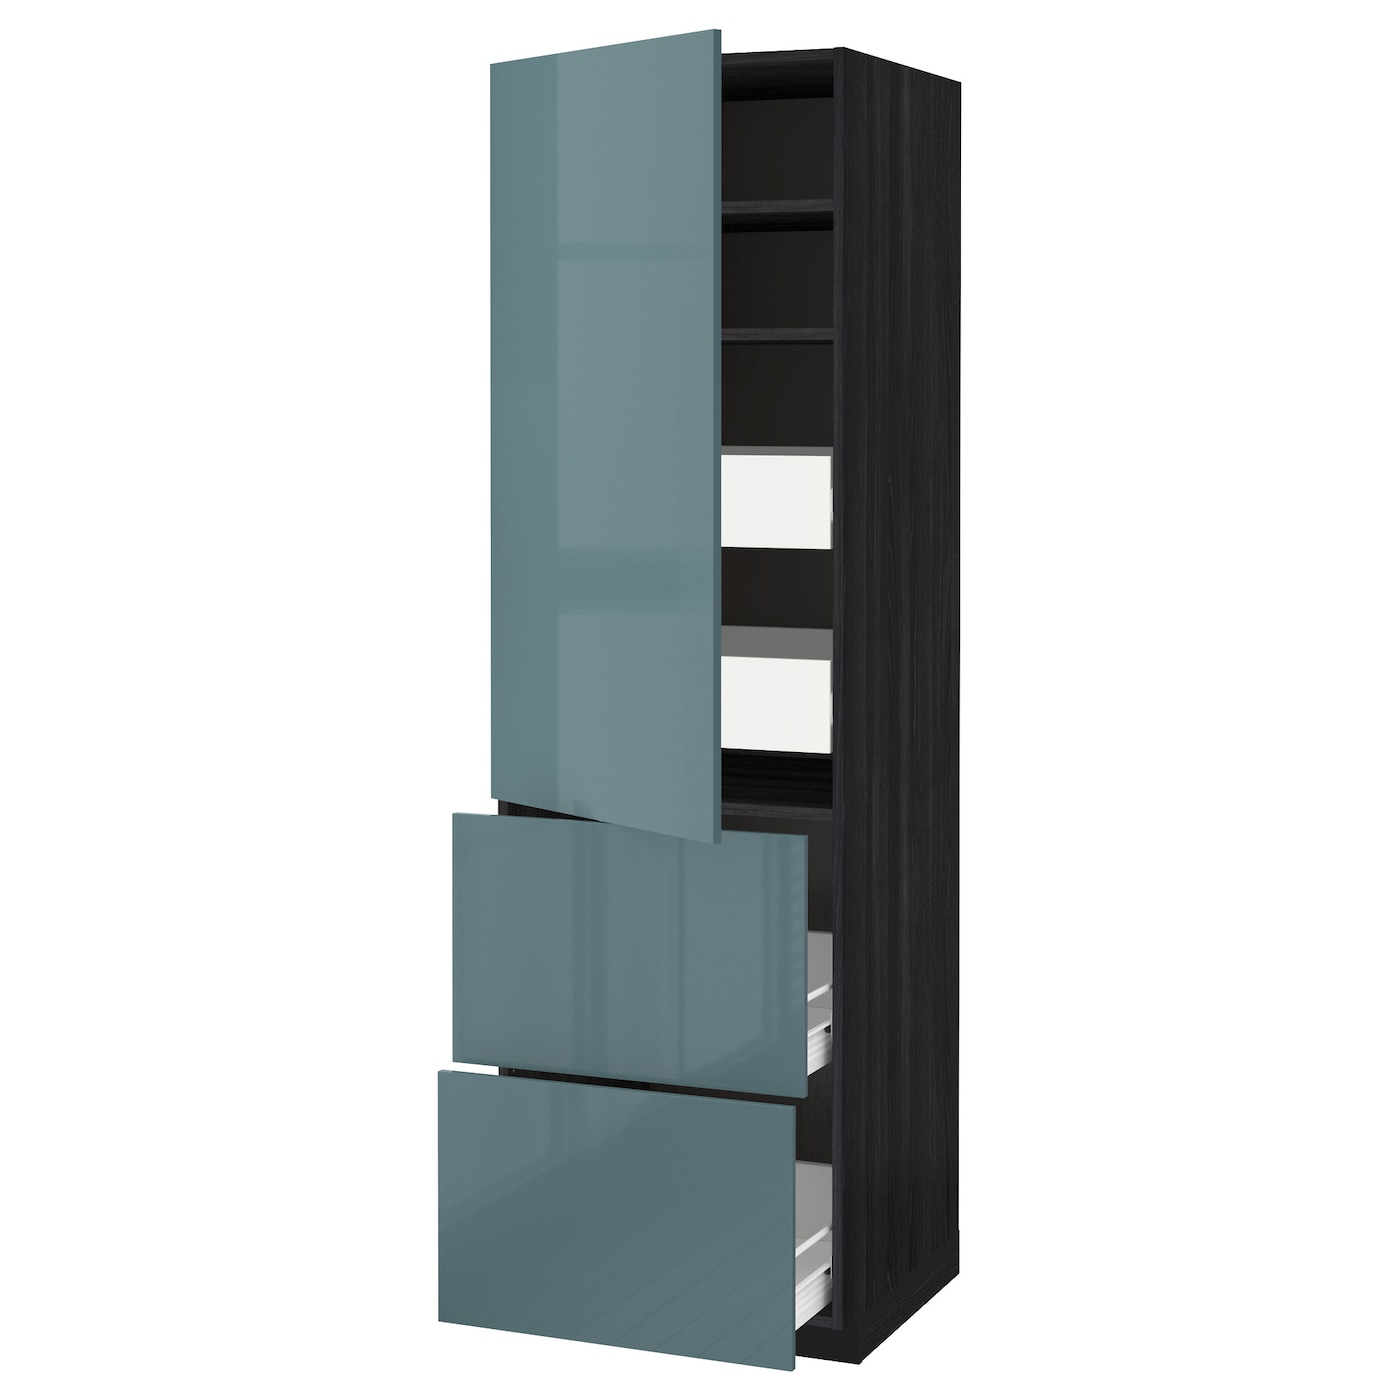 IKEA METOD/FÖRVARA hi cab w shlvs/4 drawers/dr/2 frnts Sturdy frame construction, 18 mm thick.